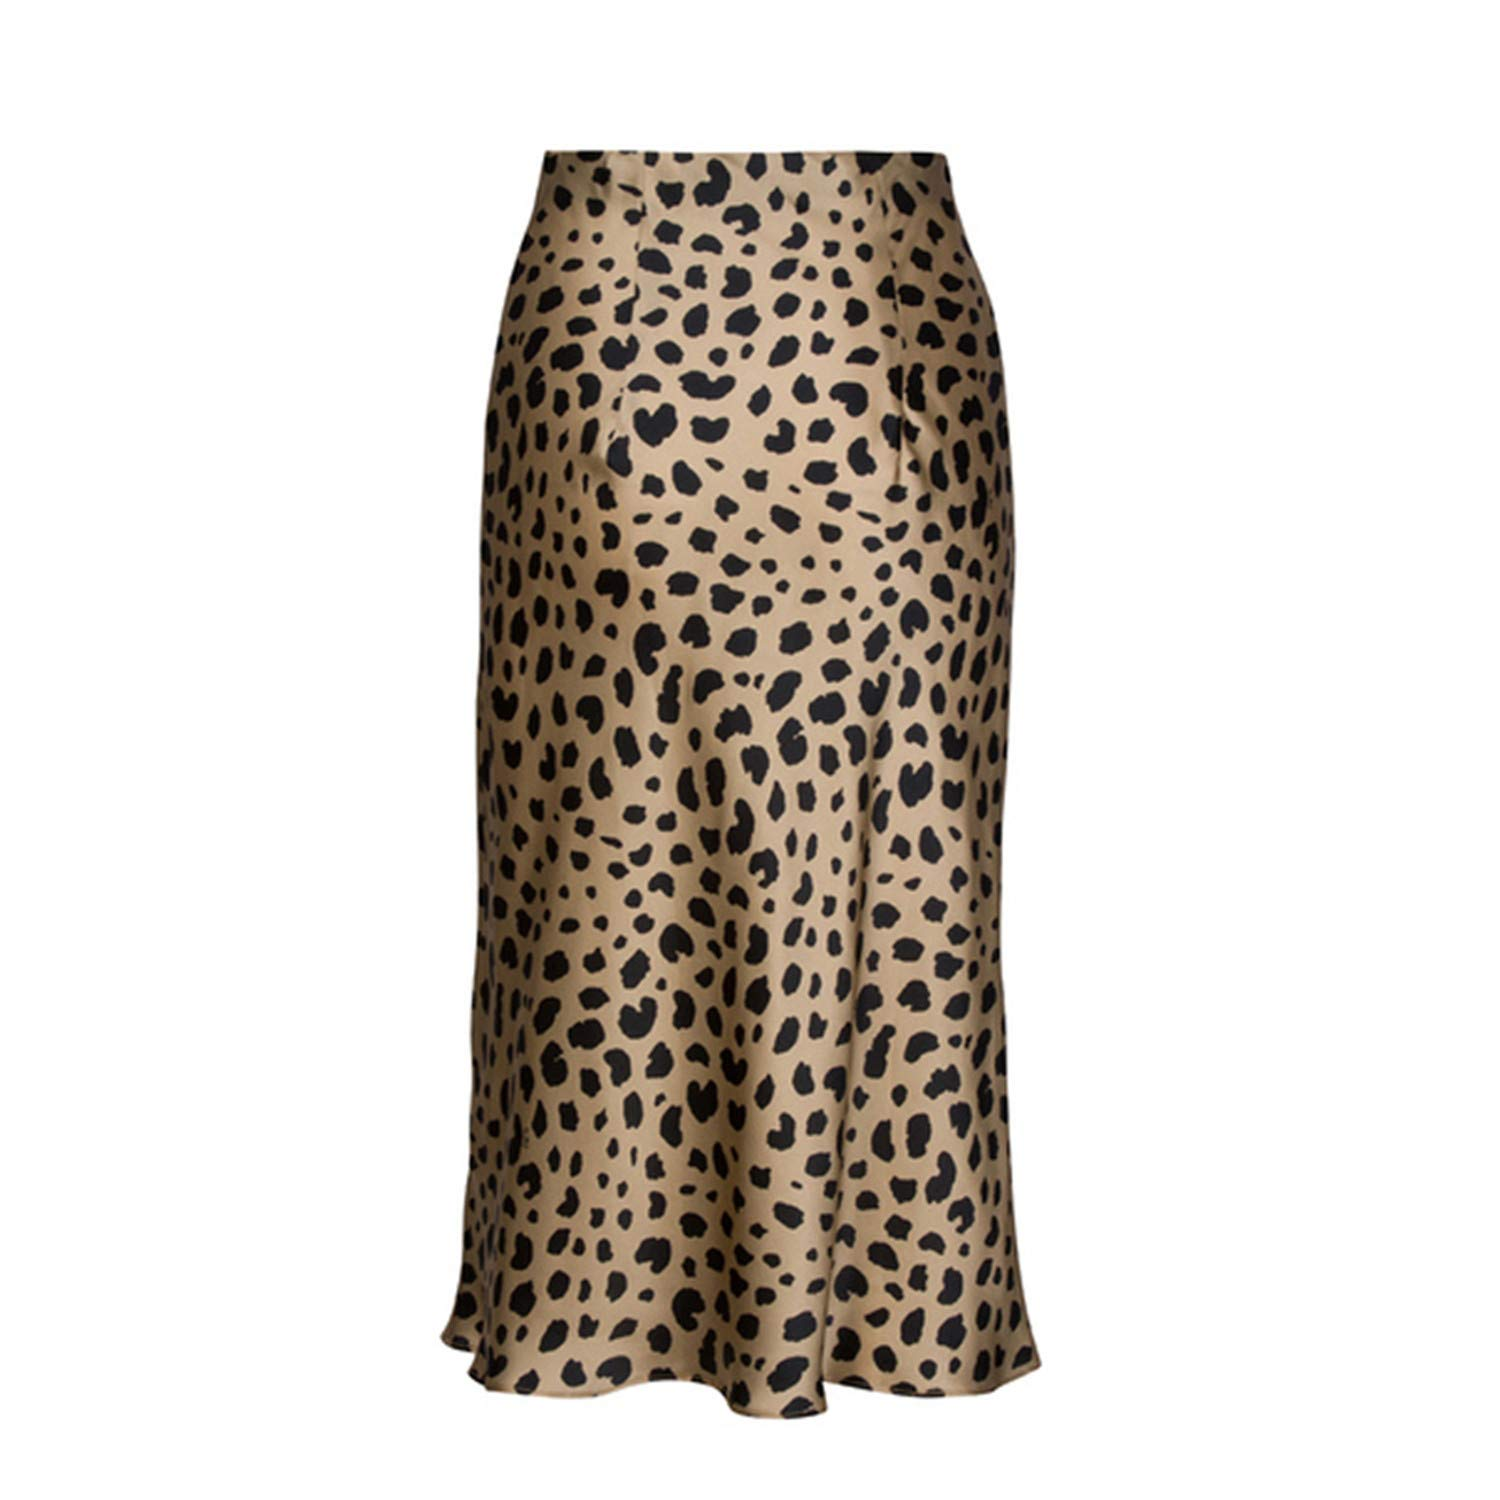 7cdec7c05f Pajamasea High Waist Leopard Midi Skirt Hidden Elasticized Waistband Silk  Satin Skirts at Amazon Women's Clothing store: